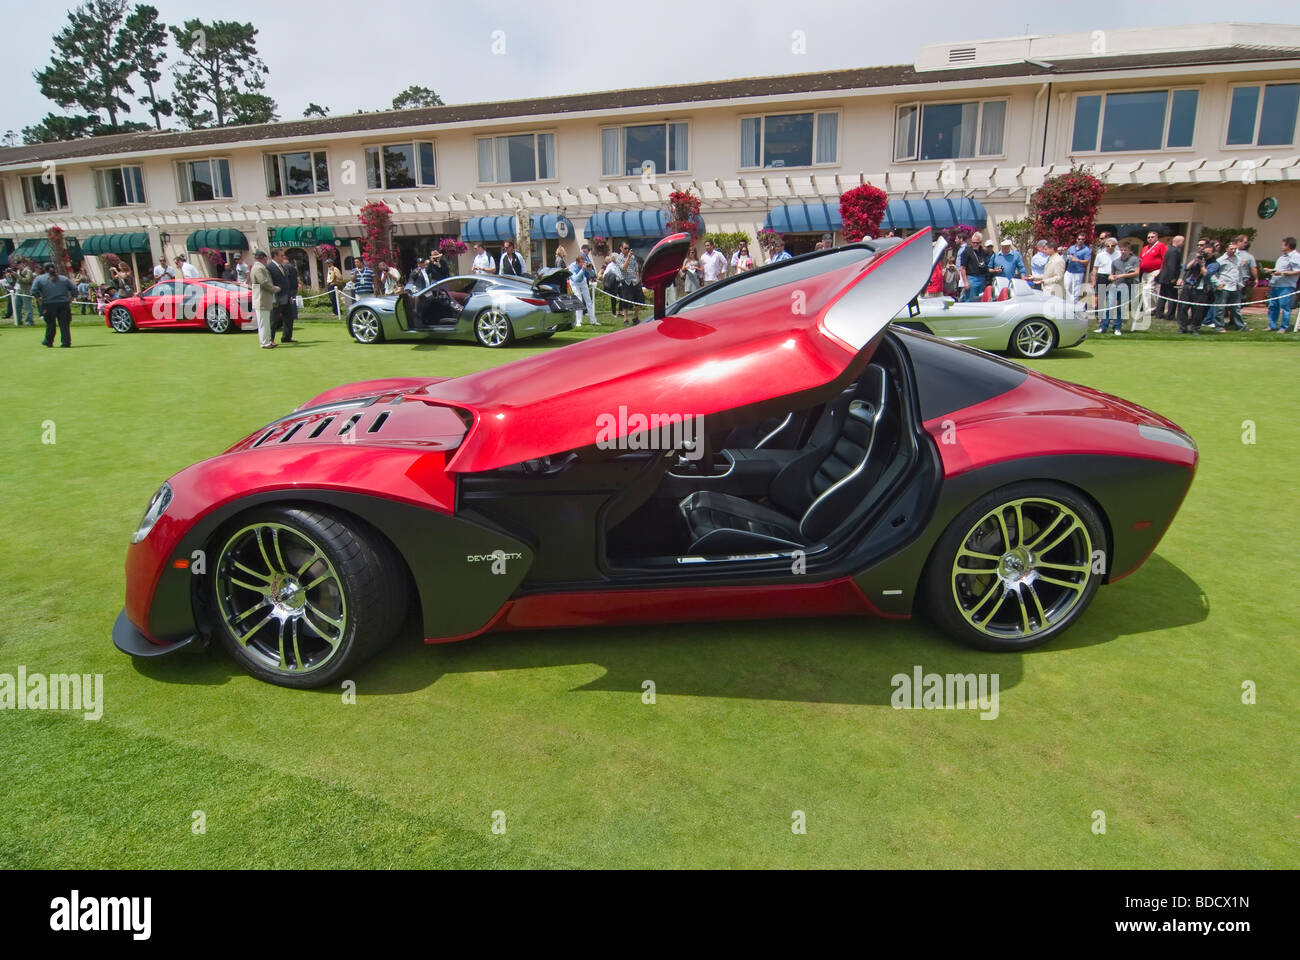 The cars and crowds at the Concours d'Elegance. Featured is the concepts lawn. - Stock Image